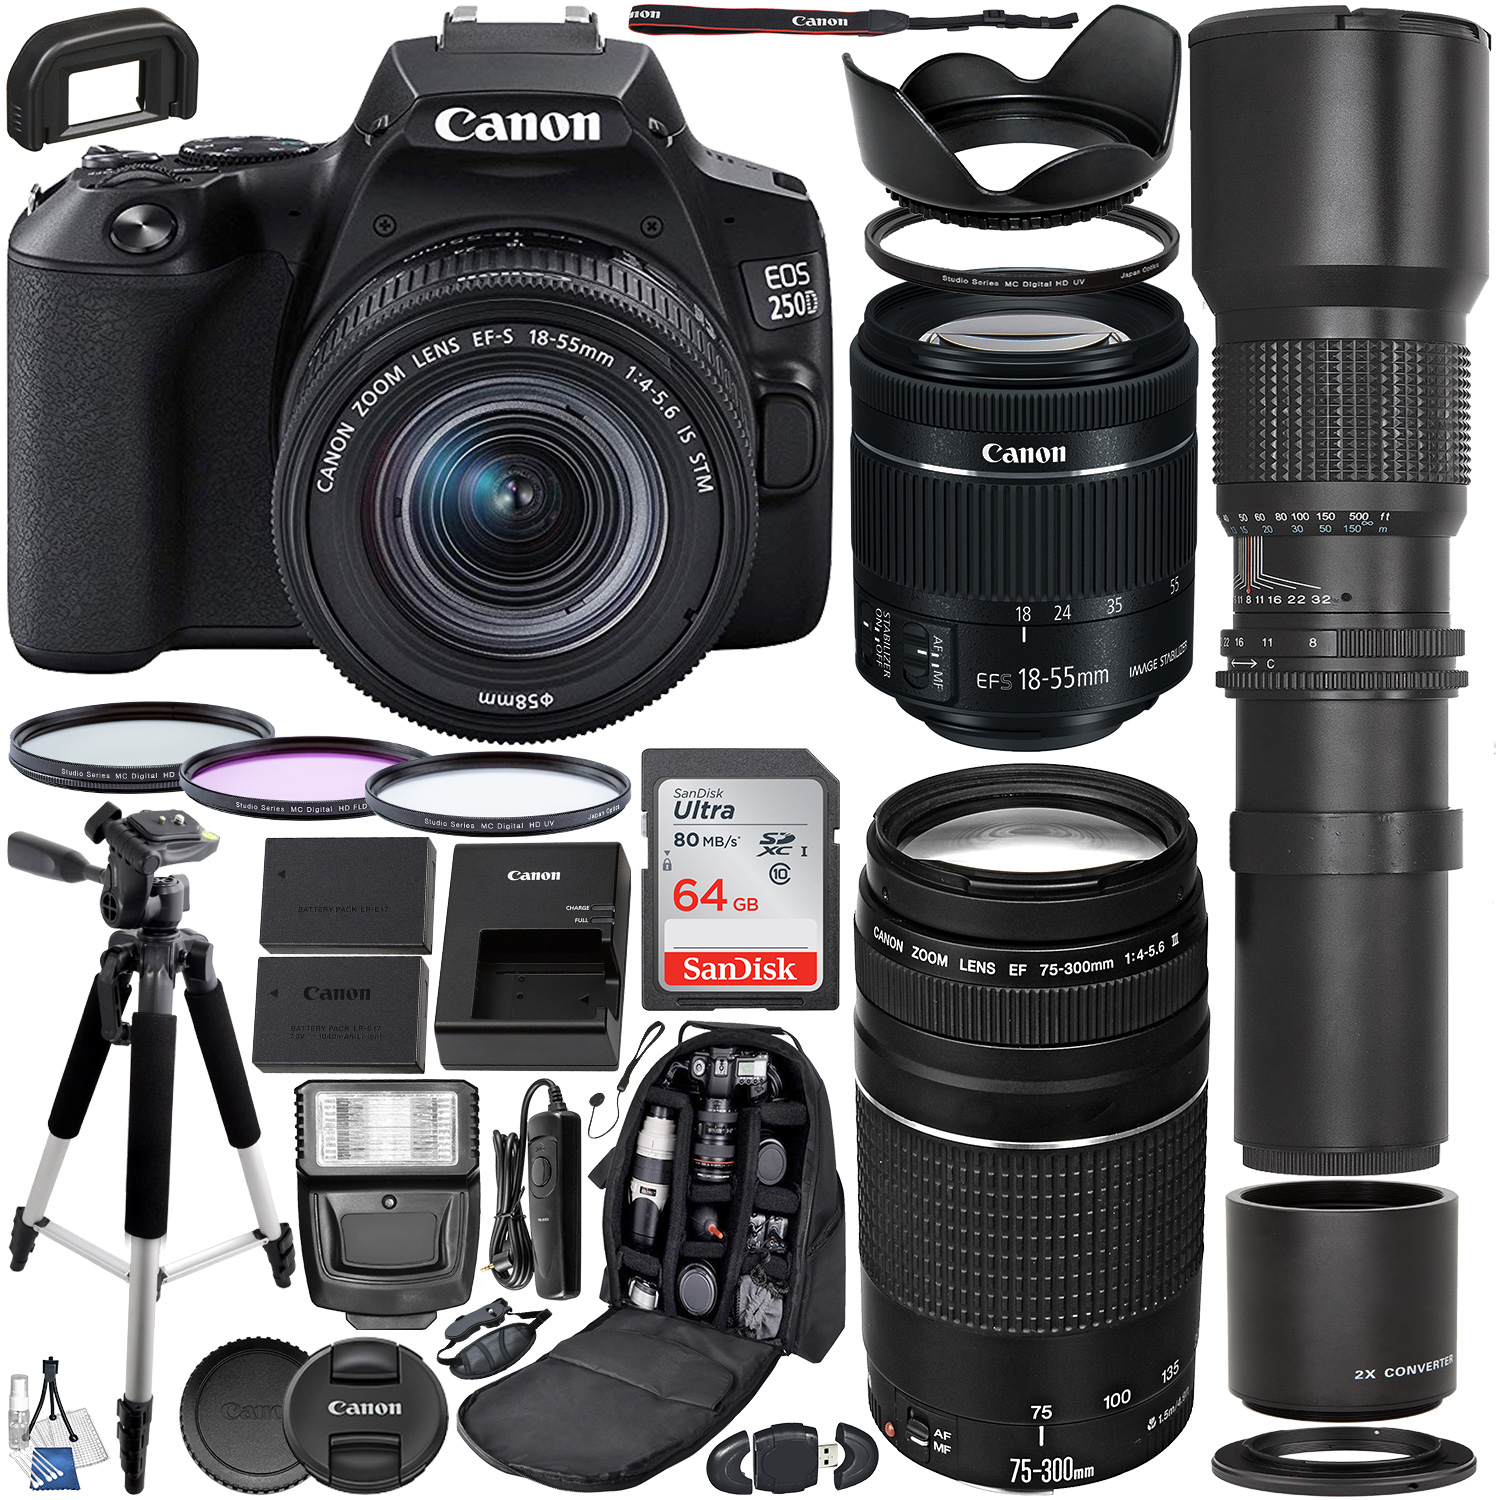 Canon EOS 250D (Rebel SL3) DSLR Camera with 18-55mm & 75-300mm Canon Lenses & 500mm Lens with 2x Teleconverter (1000mm) & Premium Accessory Bundle